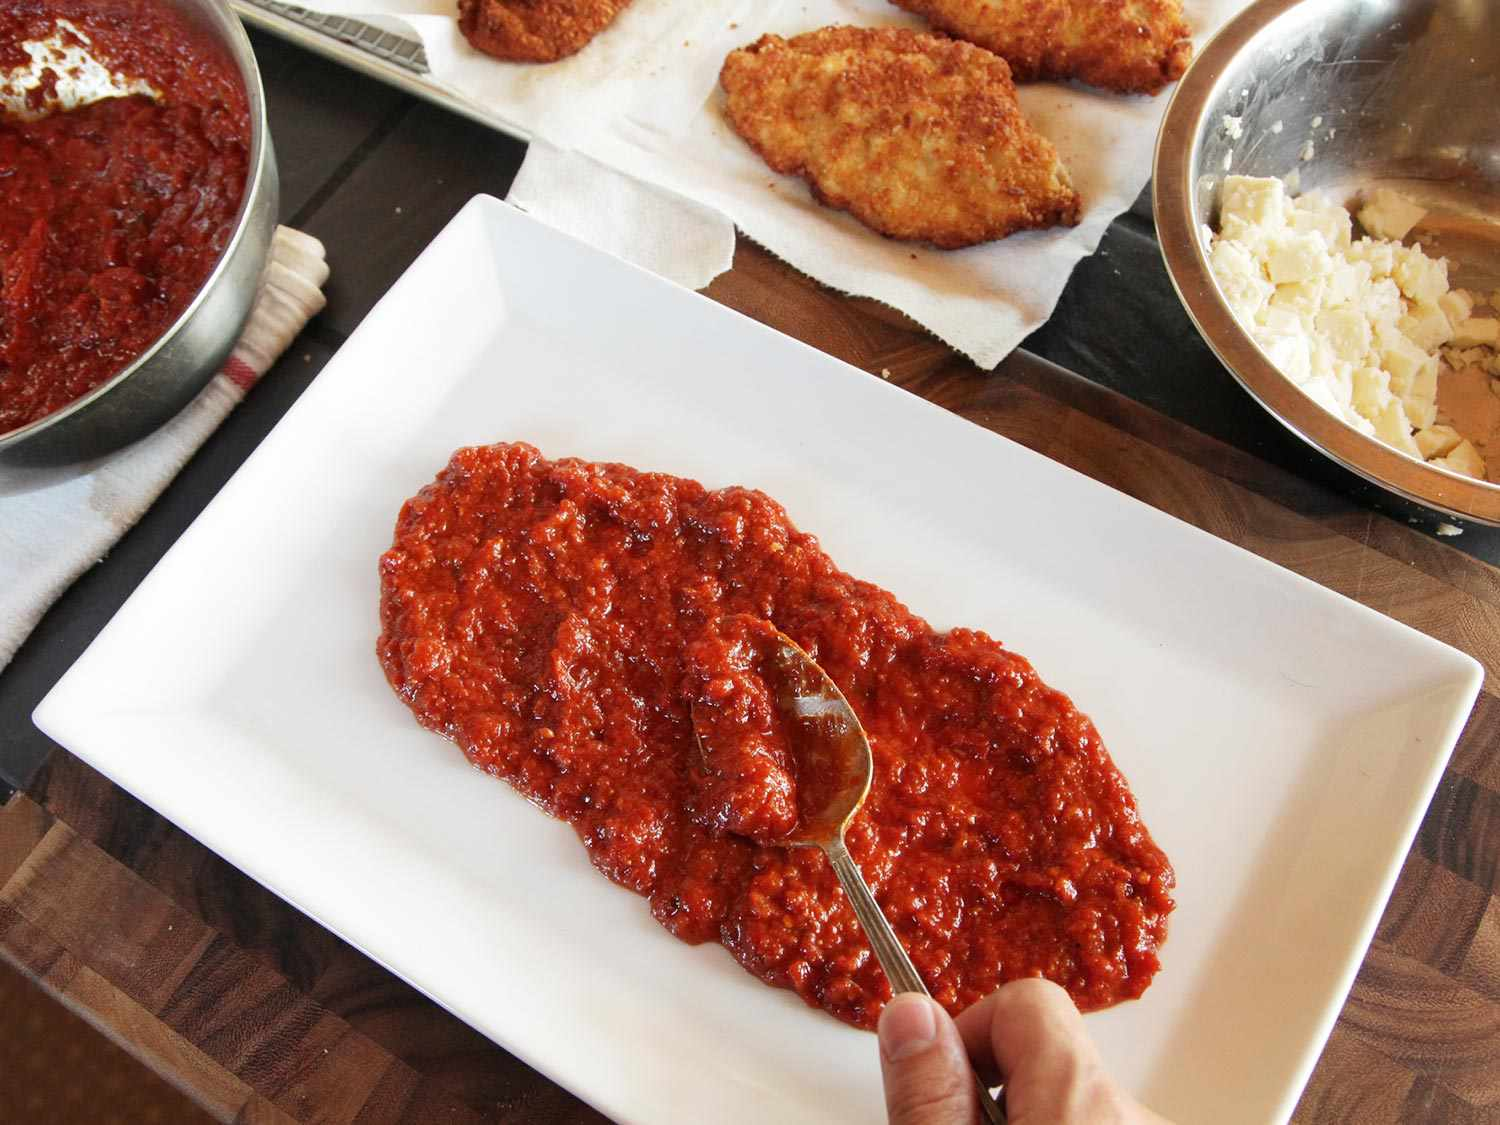 Laying down red sauce to build chicken parmesan